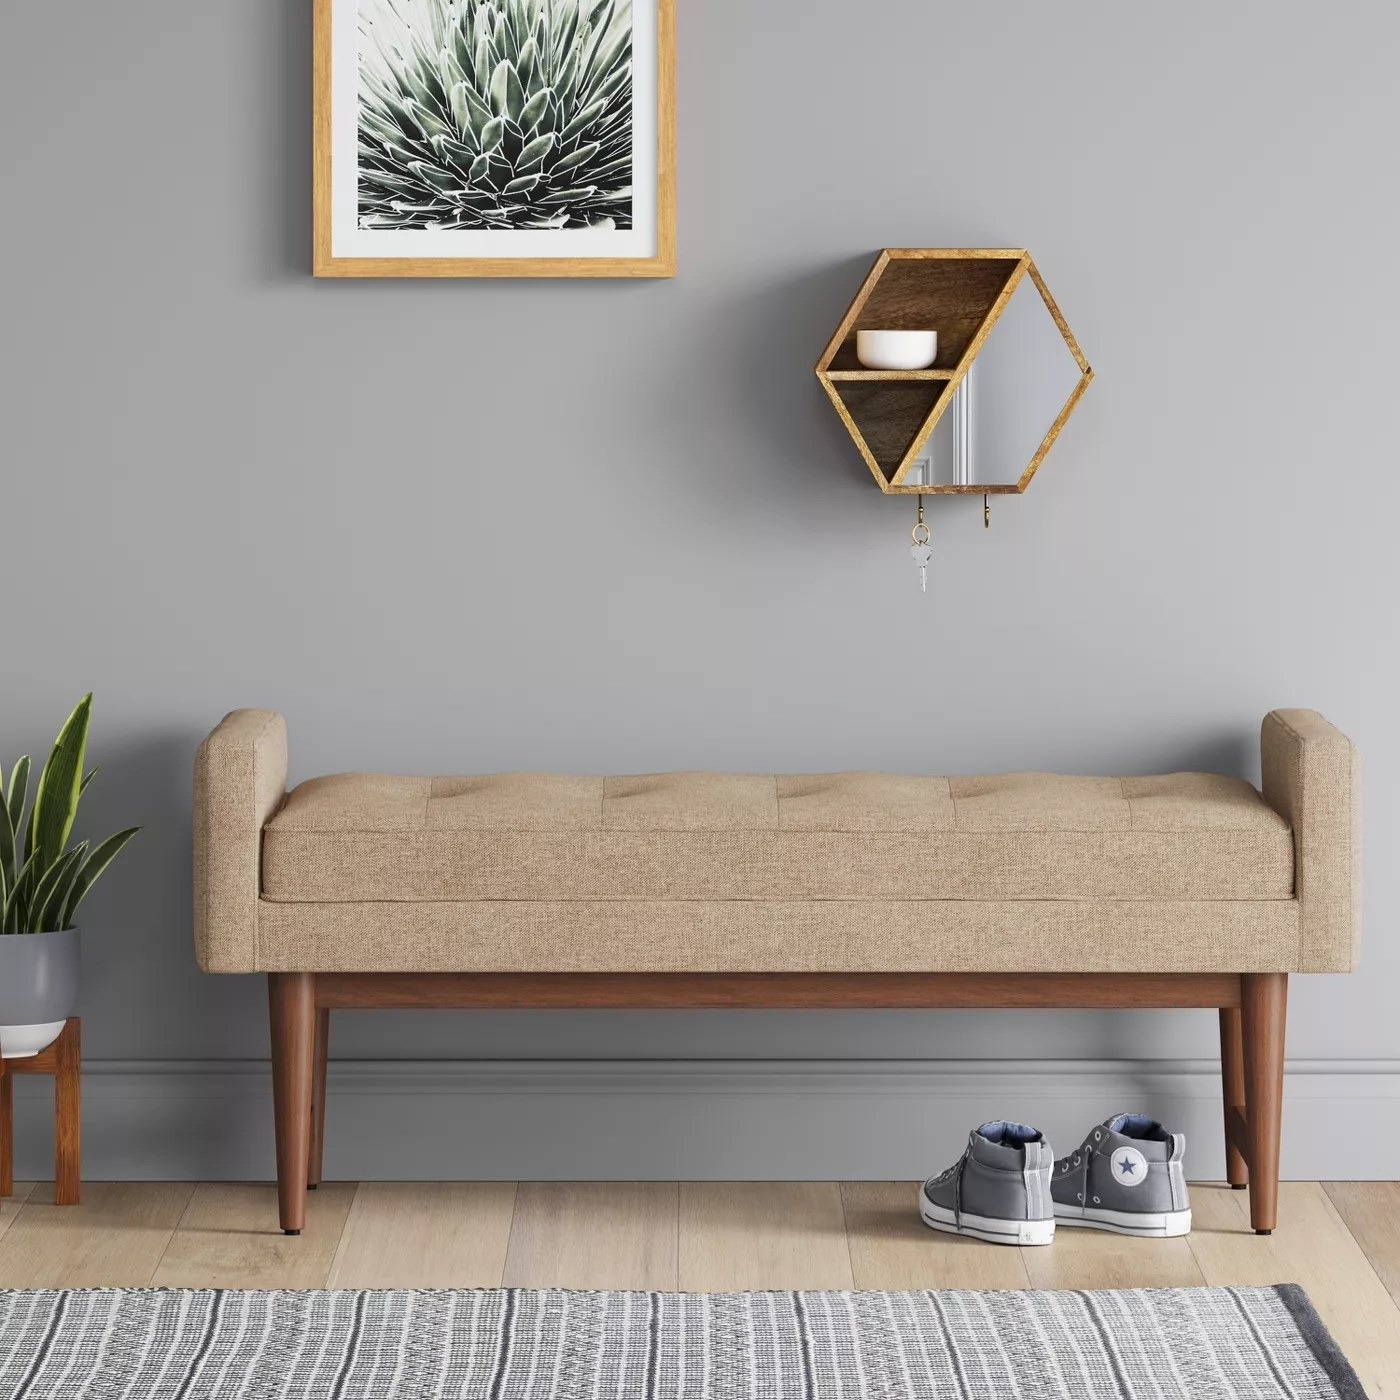 The tan-colored upholstered bench